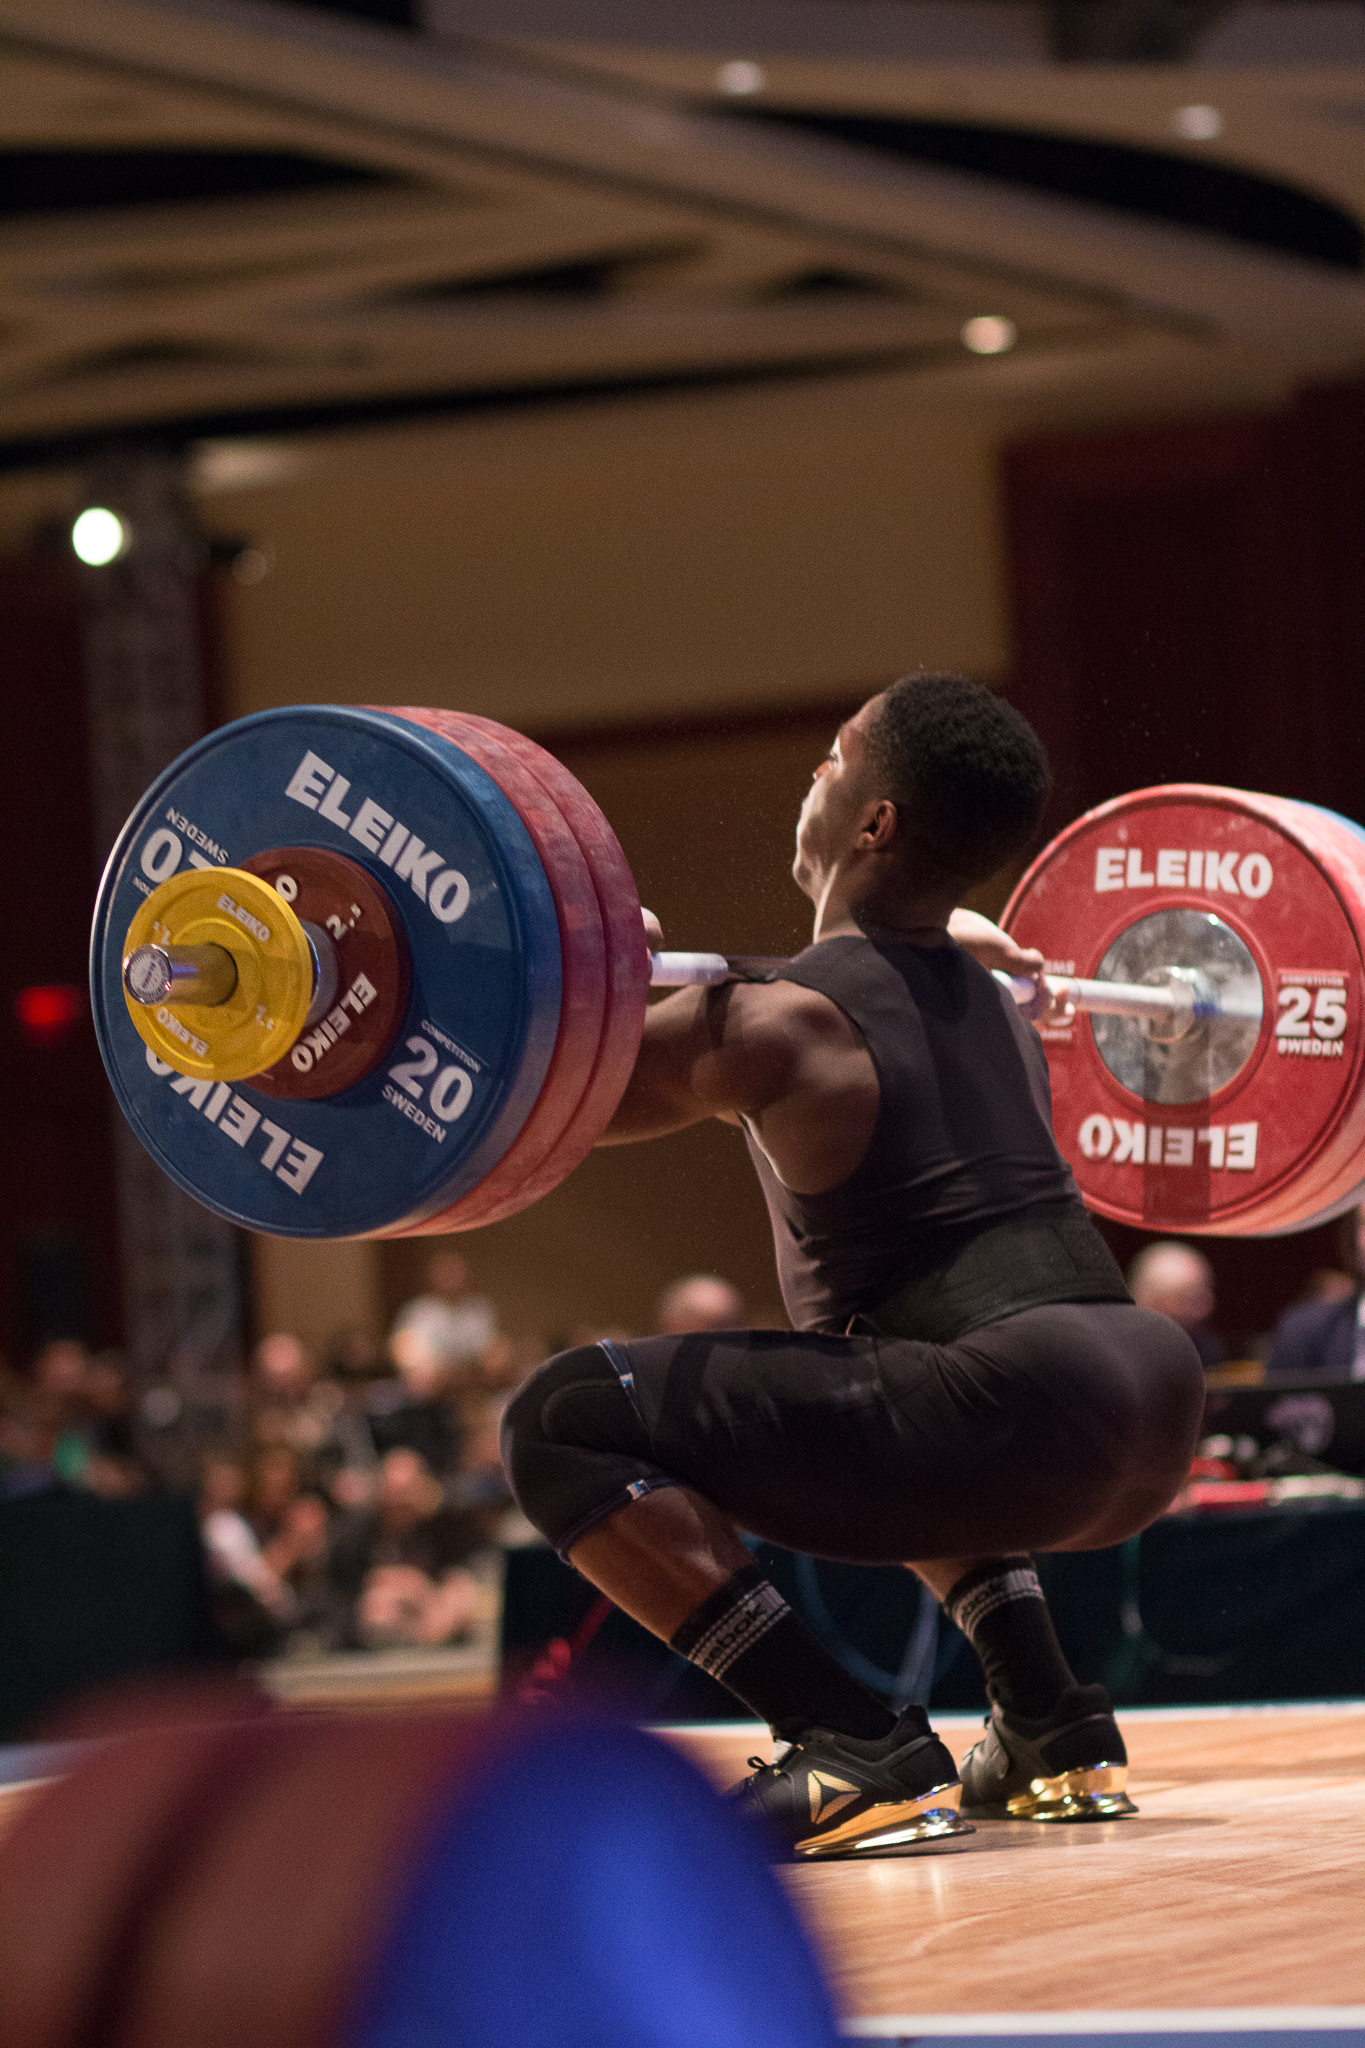 session-a-favorites-american-open-2016-weightlifting-photography (15 of 38).jpg